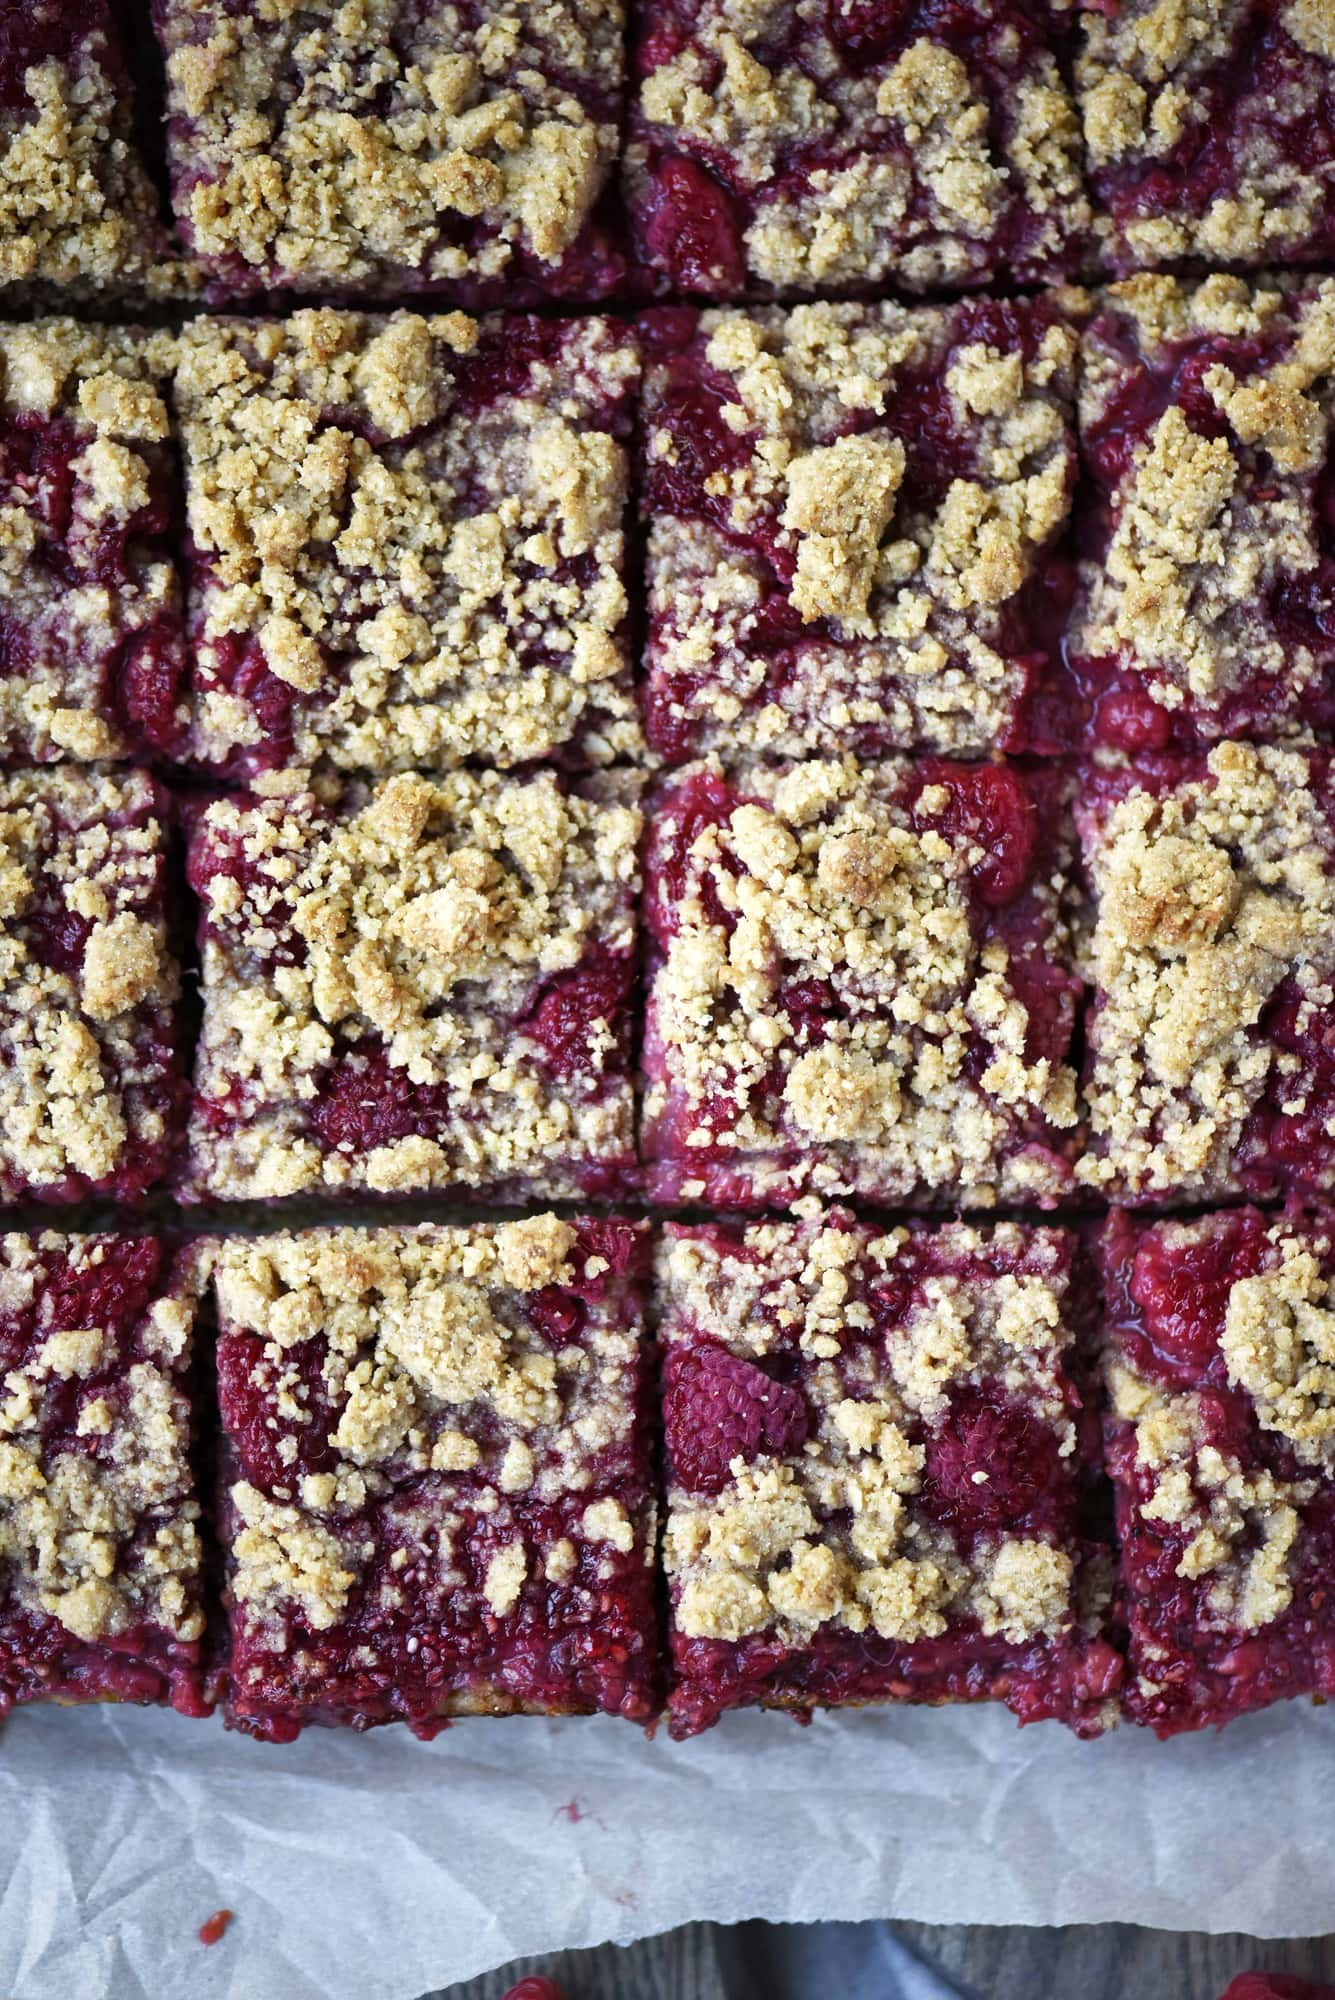 Overhead of sliced raspberry oatmeal crumble bars with streusel topping